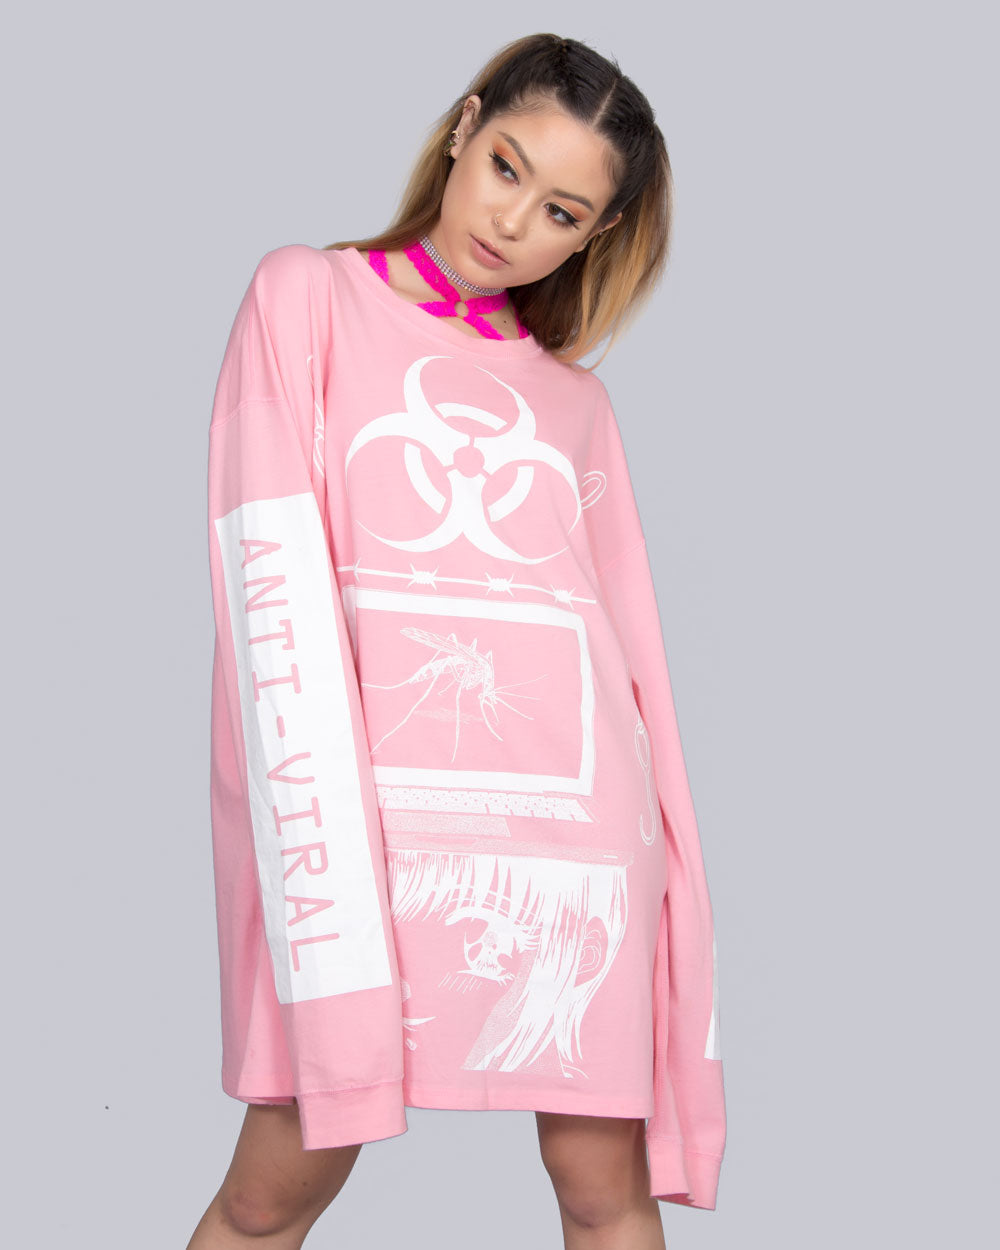 ANTI-VIRAL BY YENTA PINK LONG SLEEVE TEE - Eros Mortis